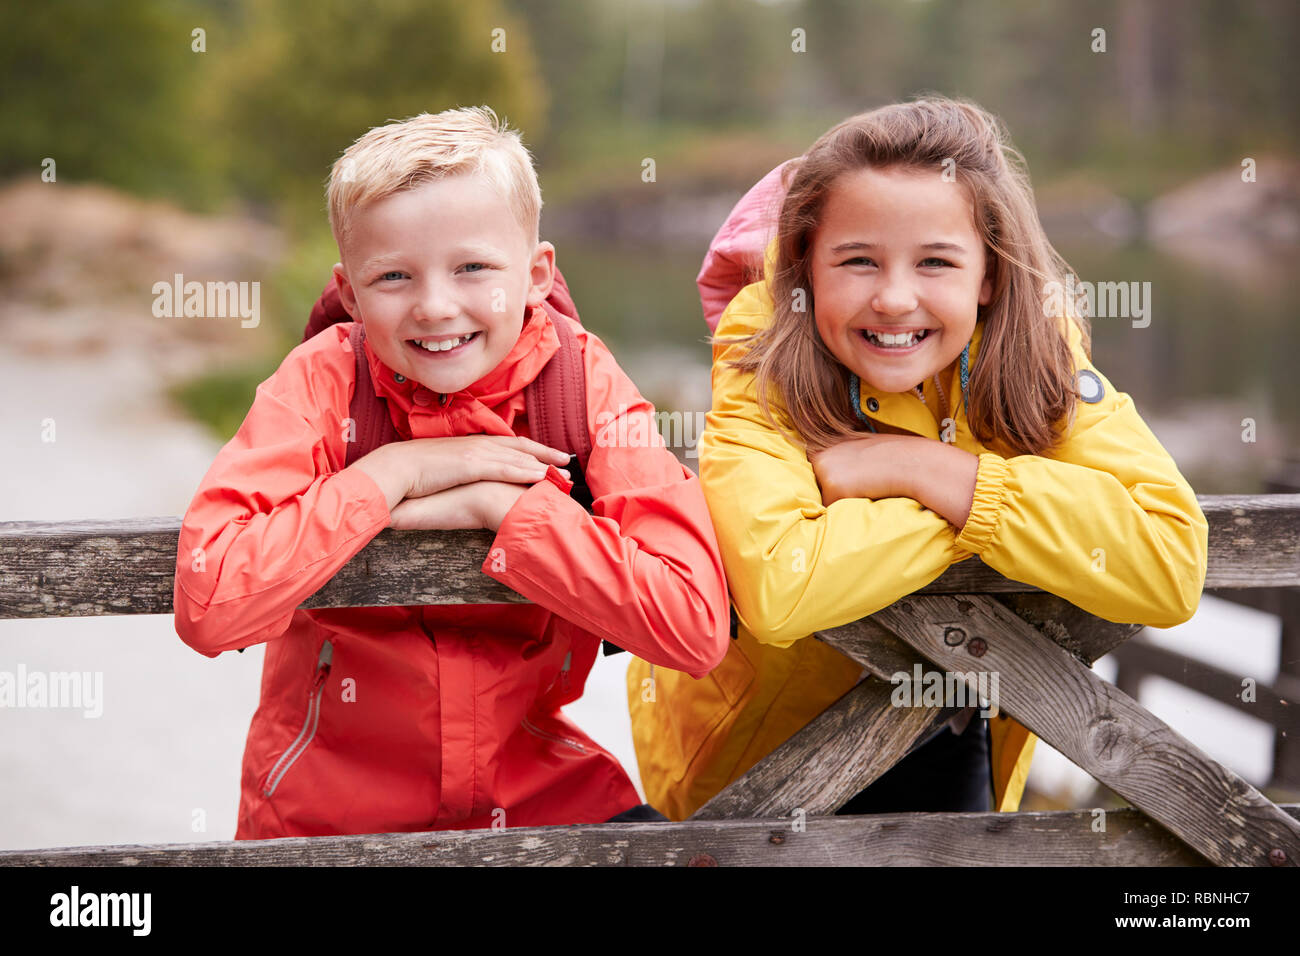 Two children leaning on a wooden fence in the countryside smiling to camera, close up - Stock Image